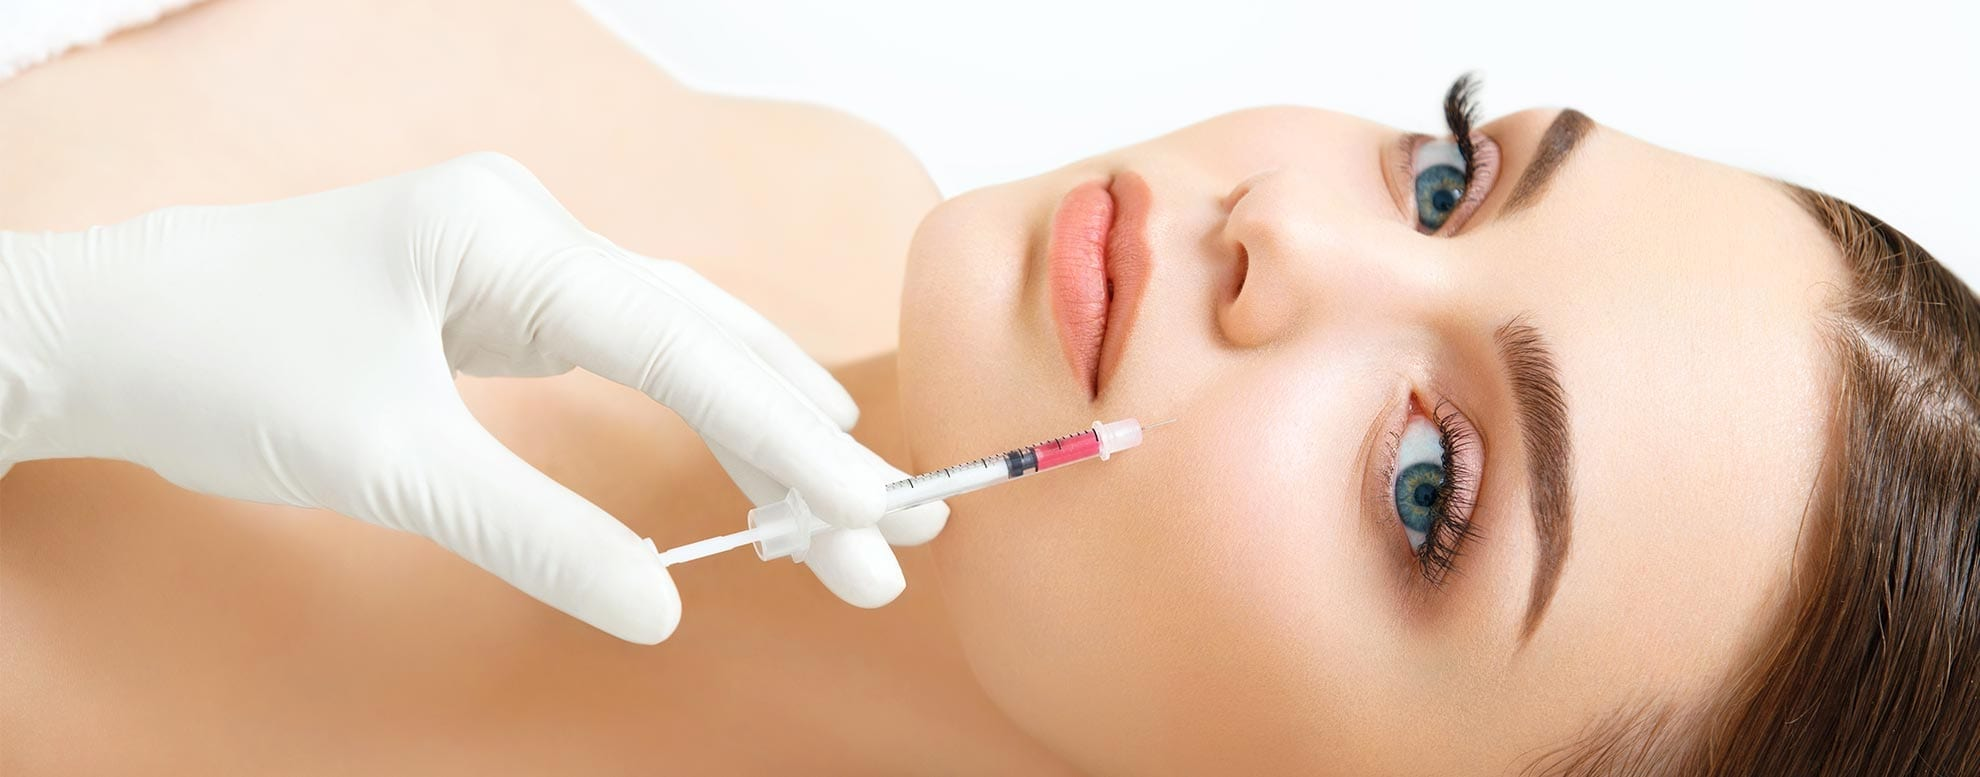 dermal-fillers-non-surgical-facelift-sculptra